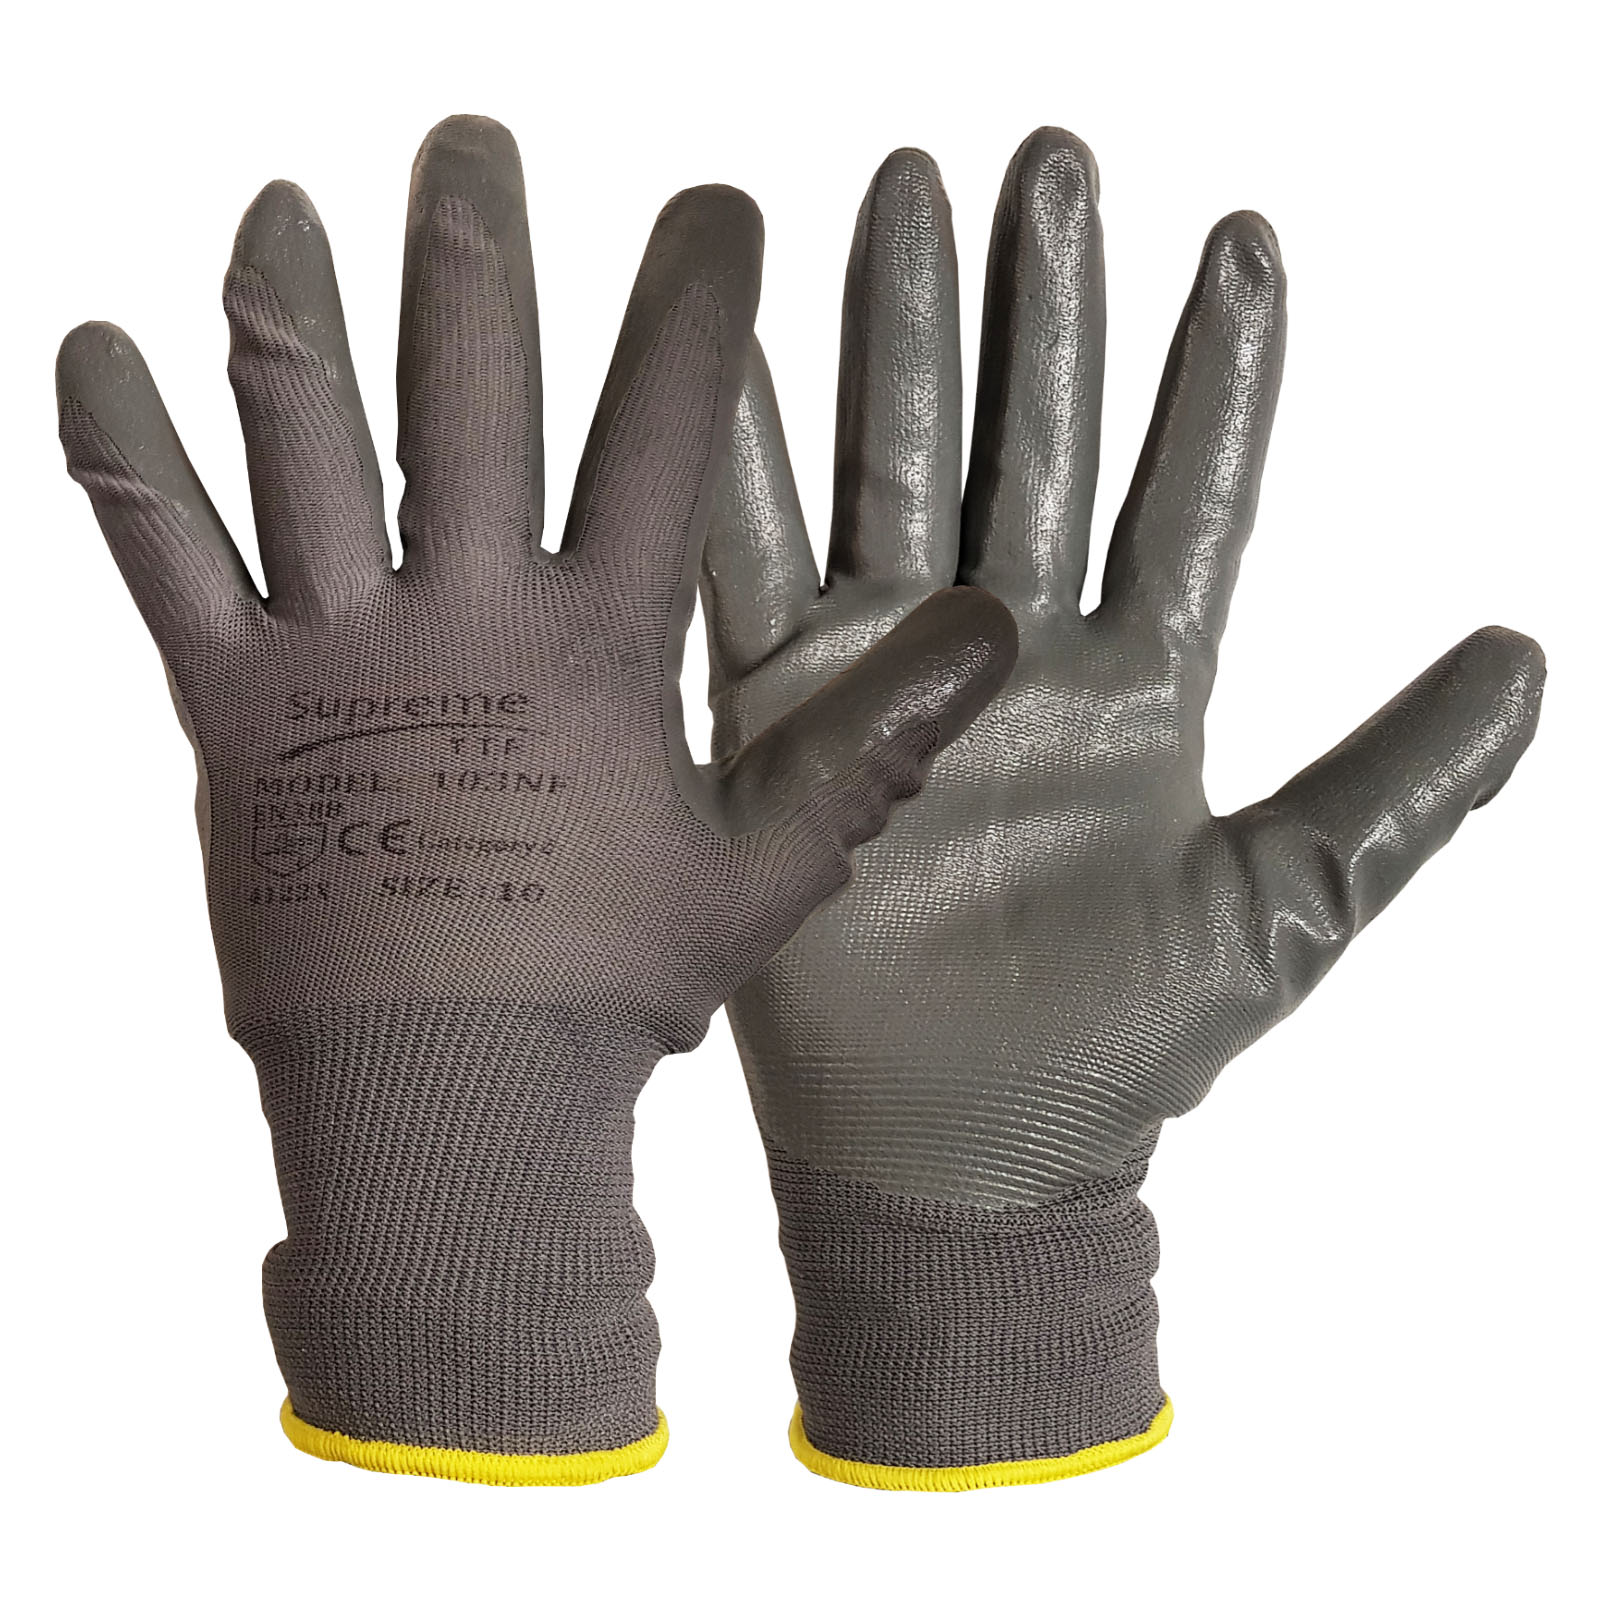 Nitrile Foam Coated Glove 103NF